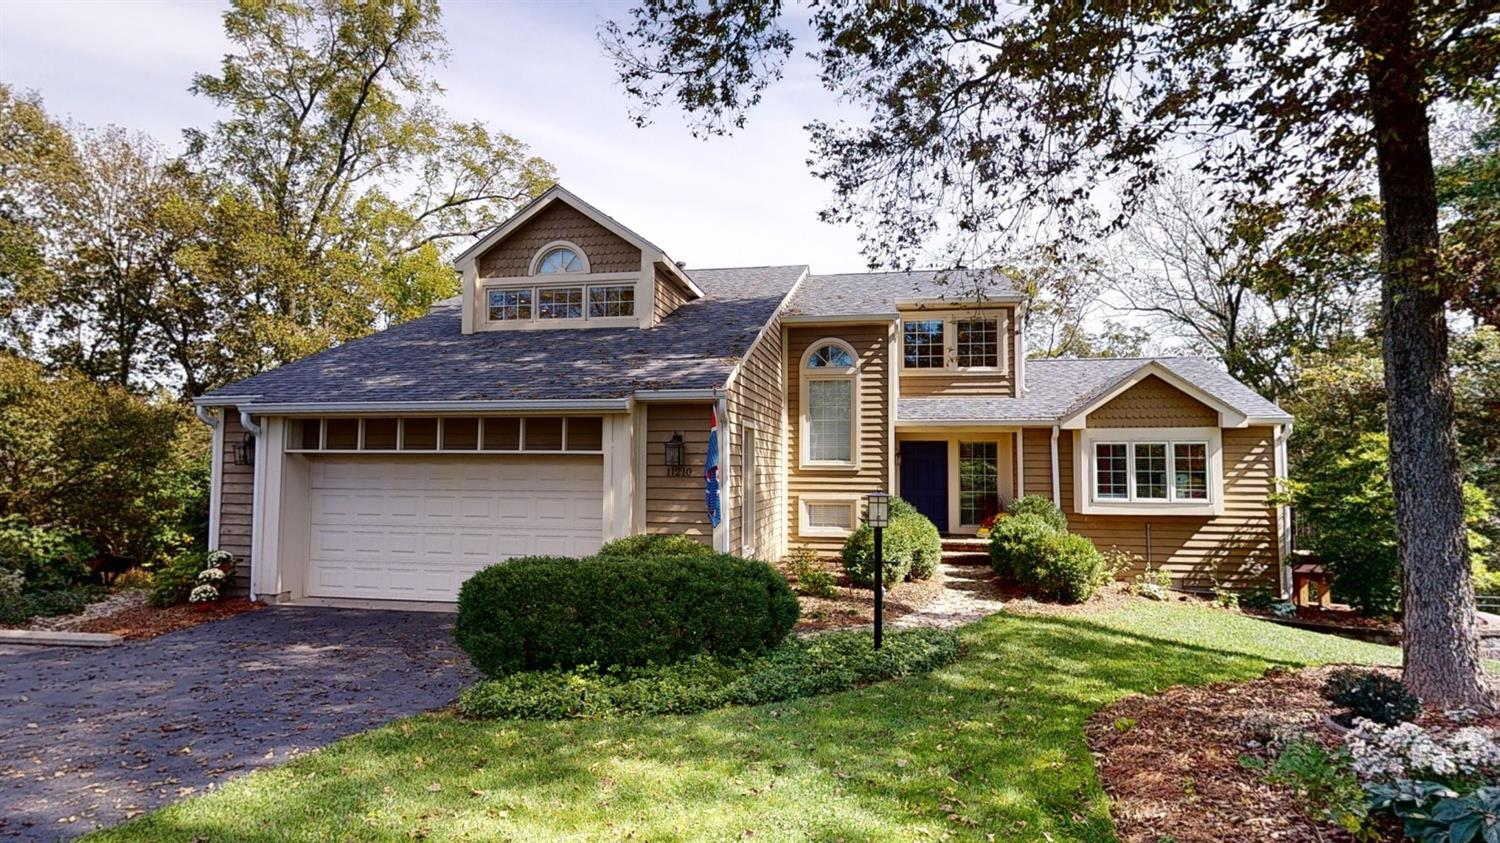 11210 Terwilligers Run Drive, Montgomery, Ohio 45249, 4 Bedrooms Bedrooms, 10 Rooms Rooms,3 BathroomsBathrooms,Single Family Residence,For Sale,Terwilligers Run,1719153